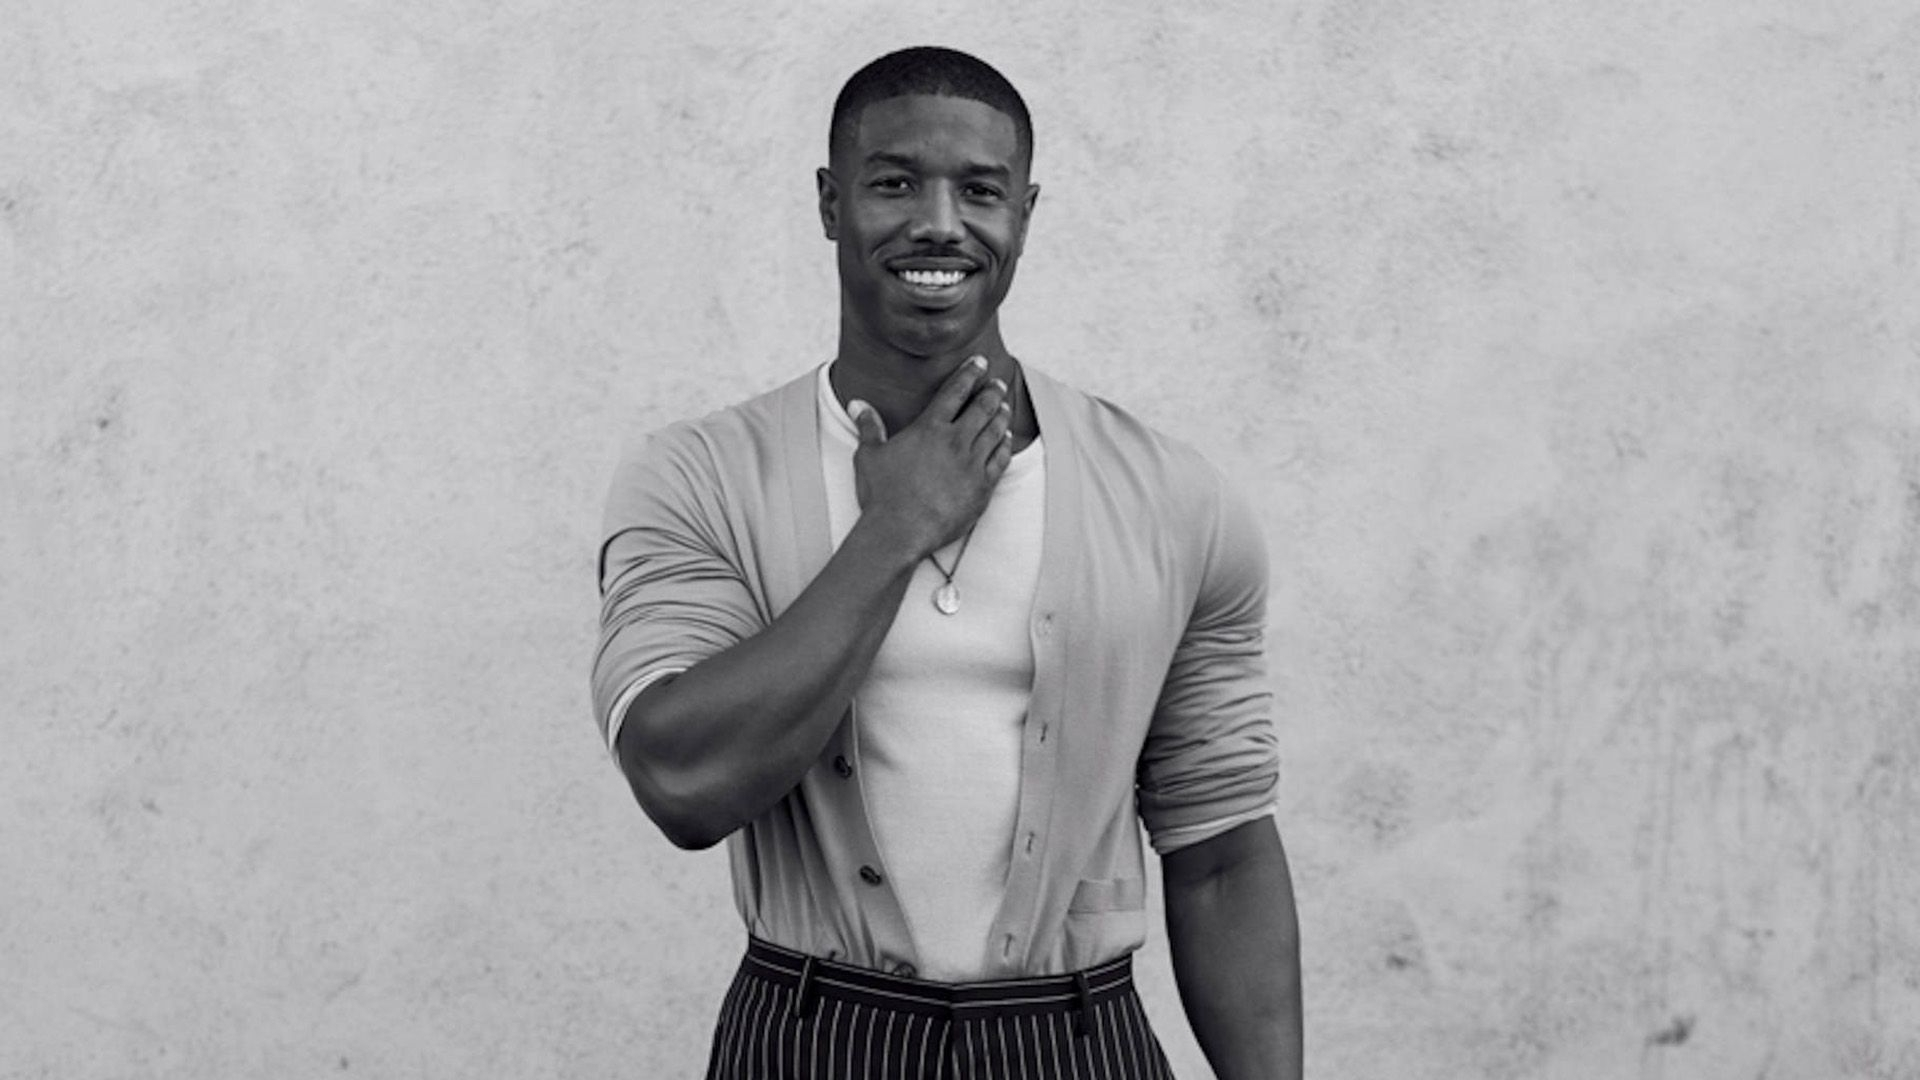 michael b. jordan cool full hd wallpapers and images - 1080p